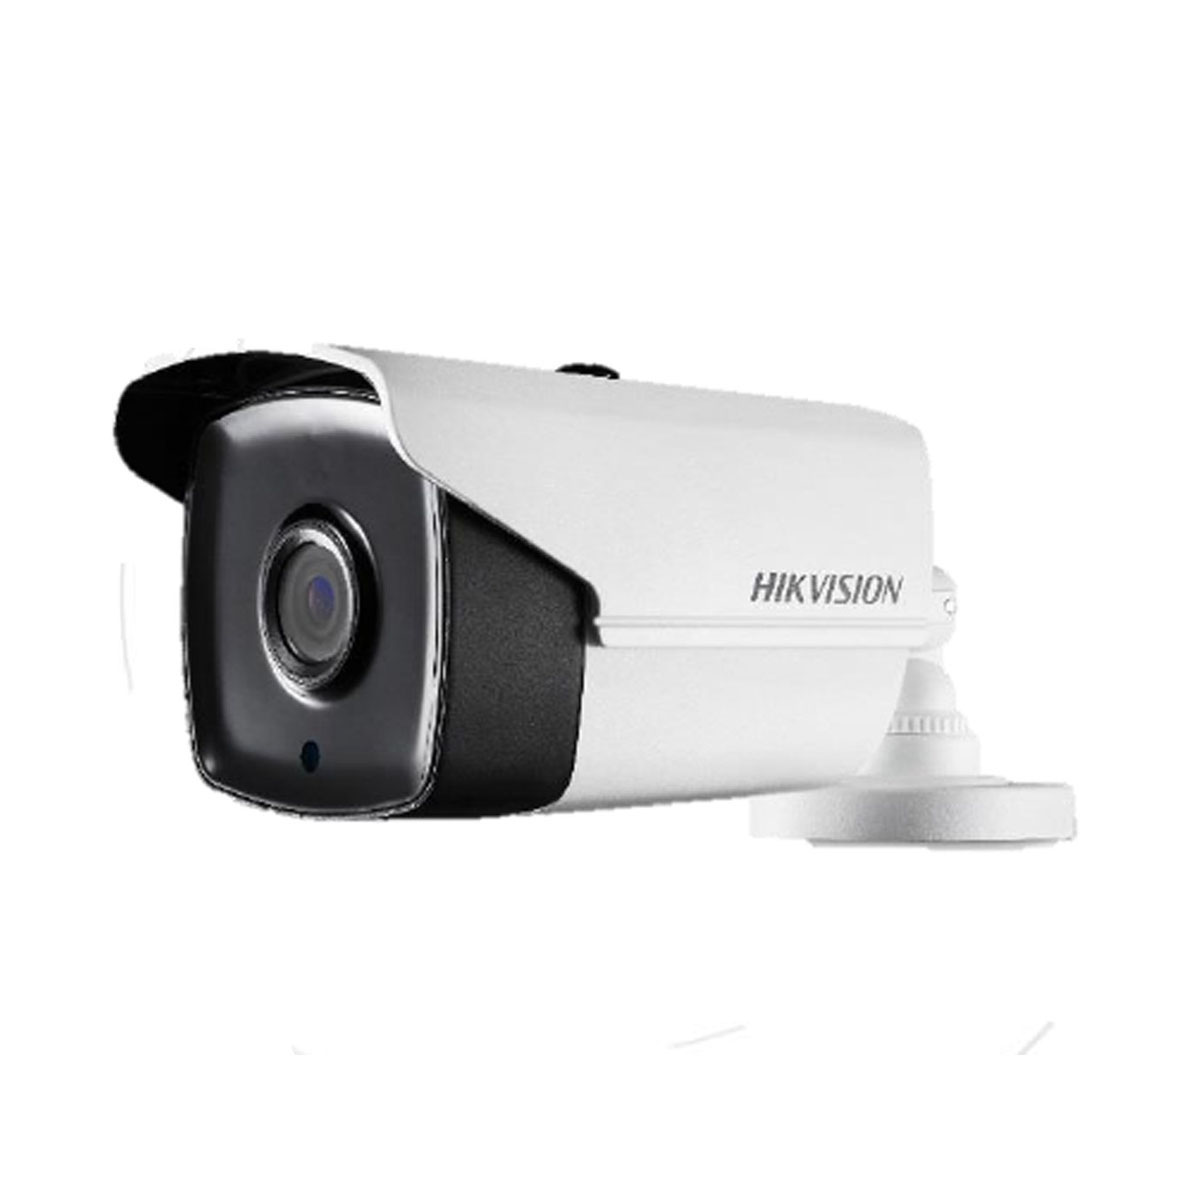 Cámara Hikvision DS-2CE16H0T-IT3F 5MP Tipo Bullet